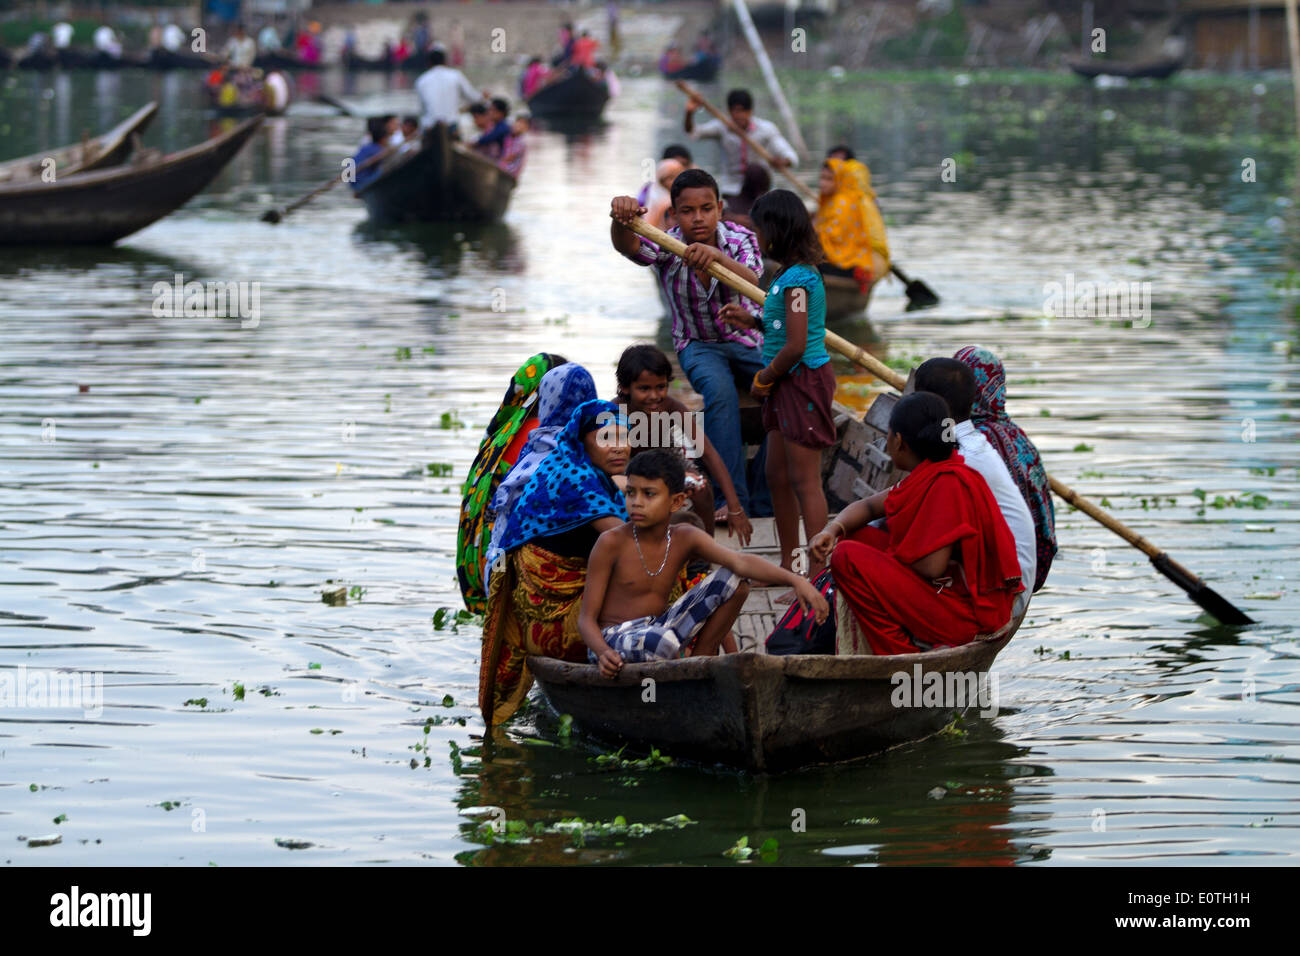 Transportation in a river Dhaka Bangladesh - Stock Image